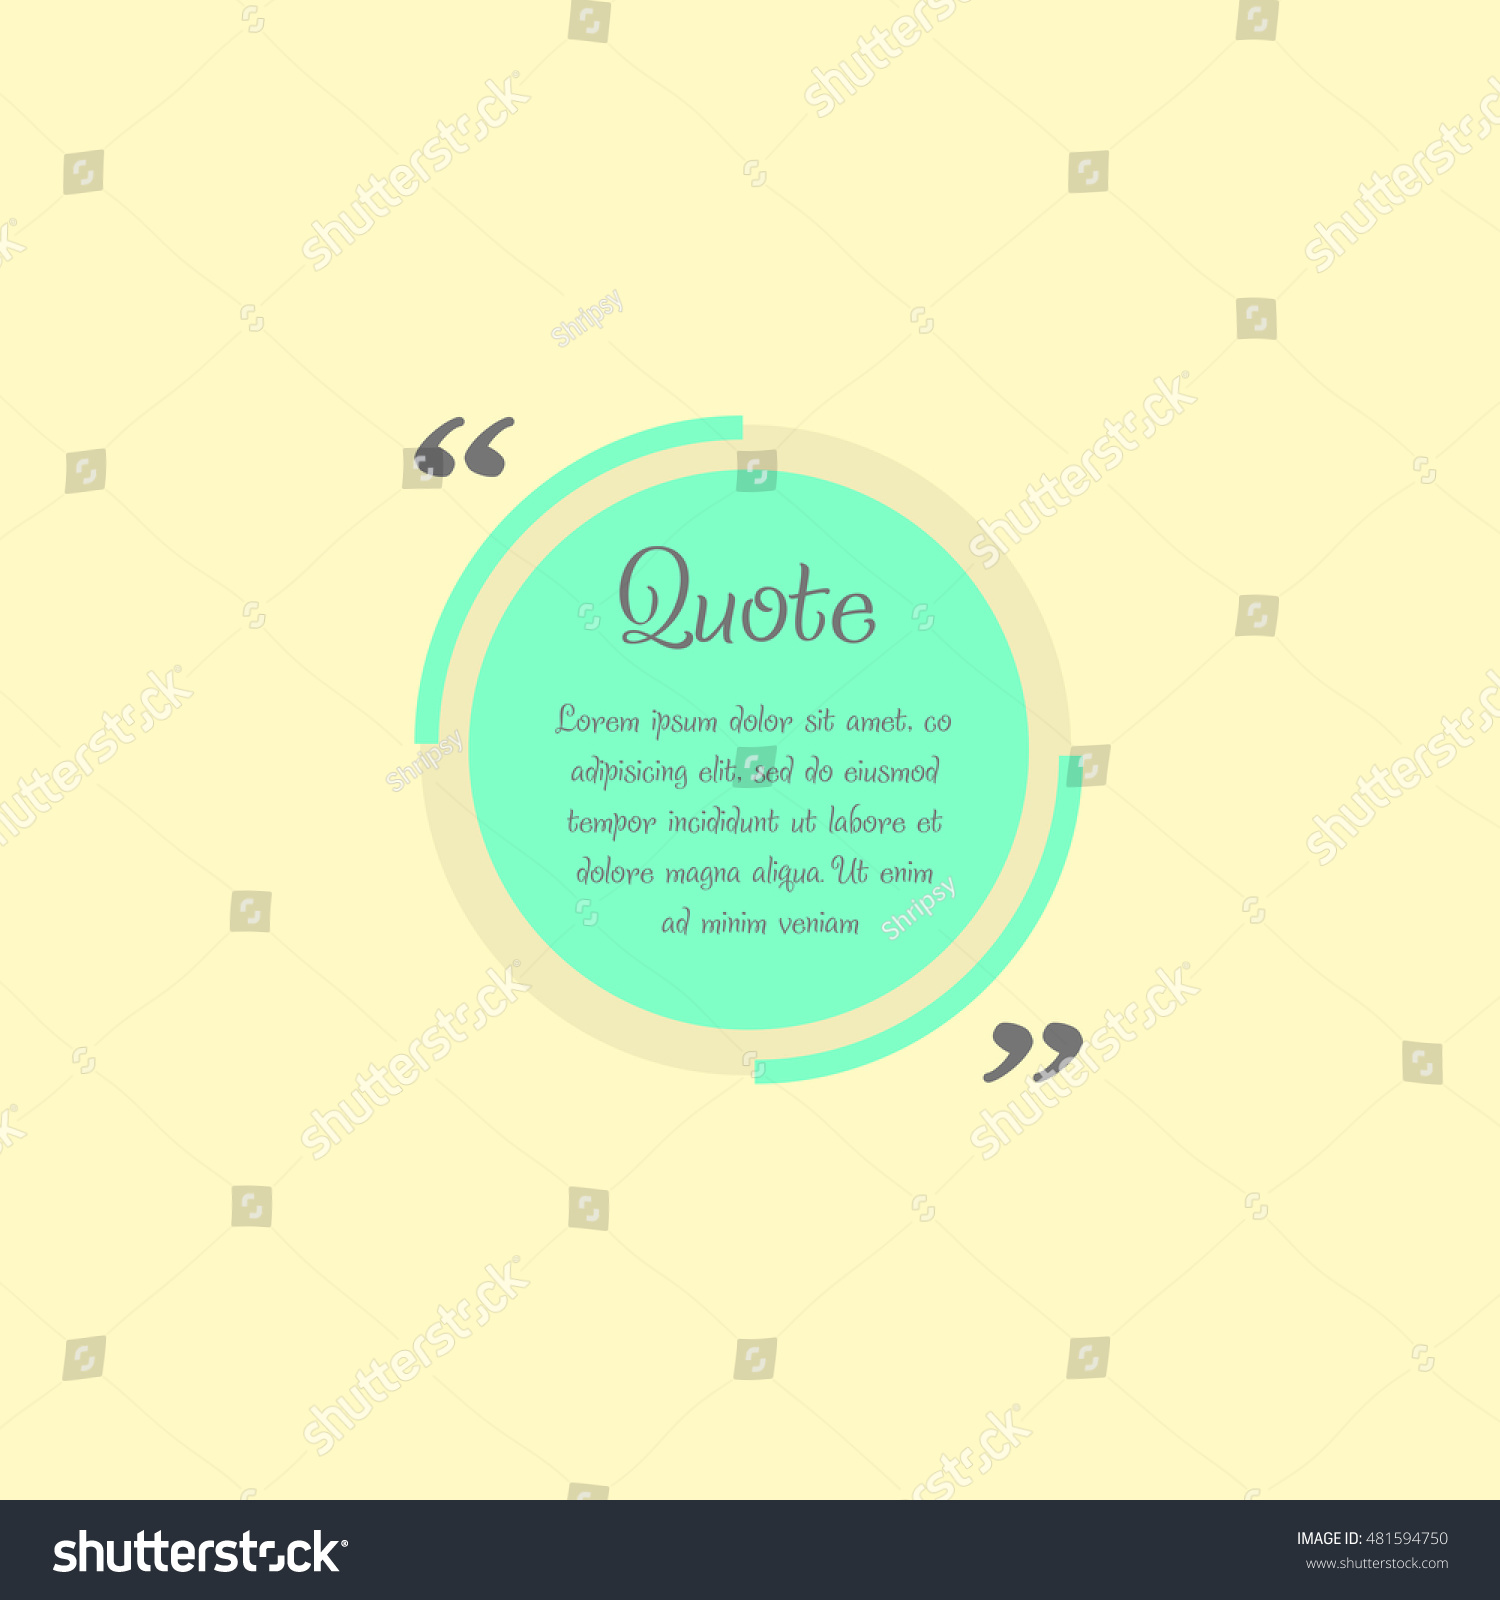 Quote Blank Template Design Elements Circle Stock Photo (Photo ...